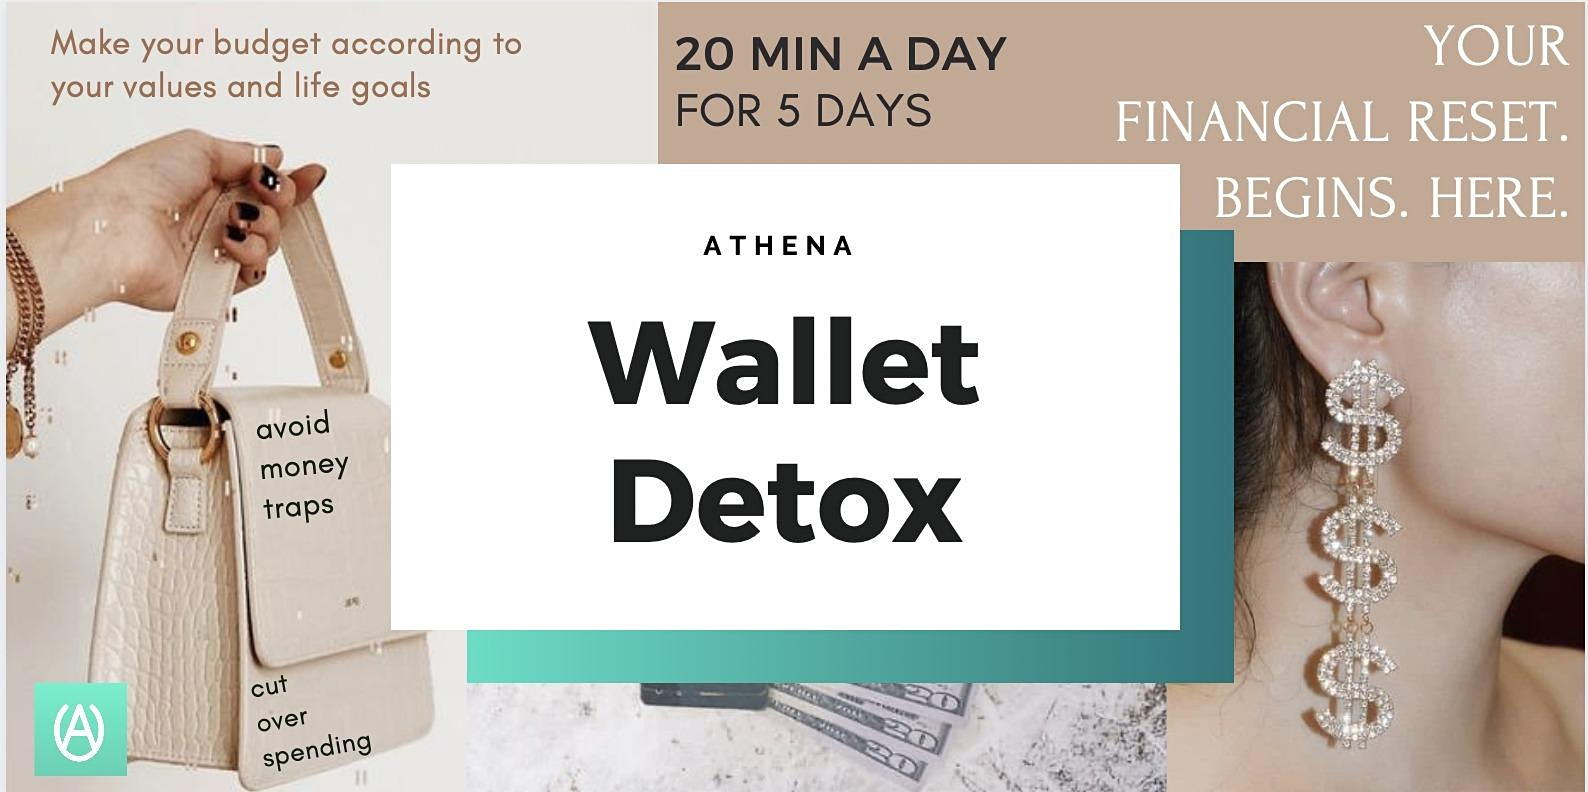 Wallet Detox - Budgeting Course